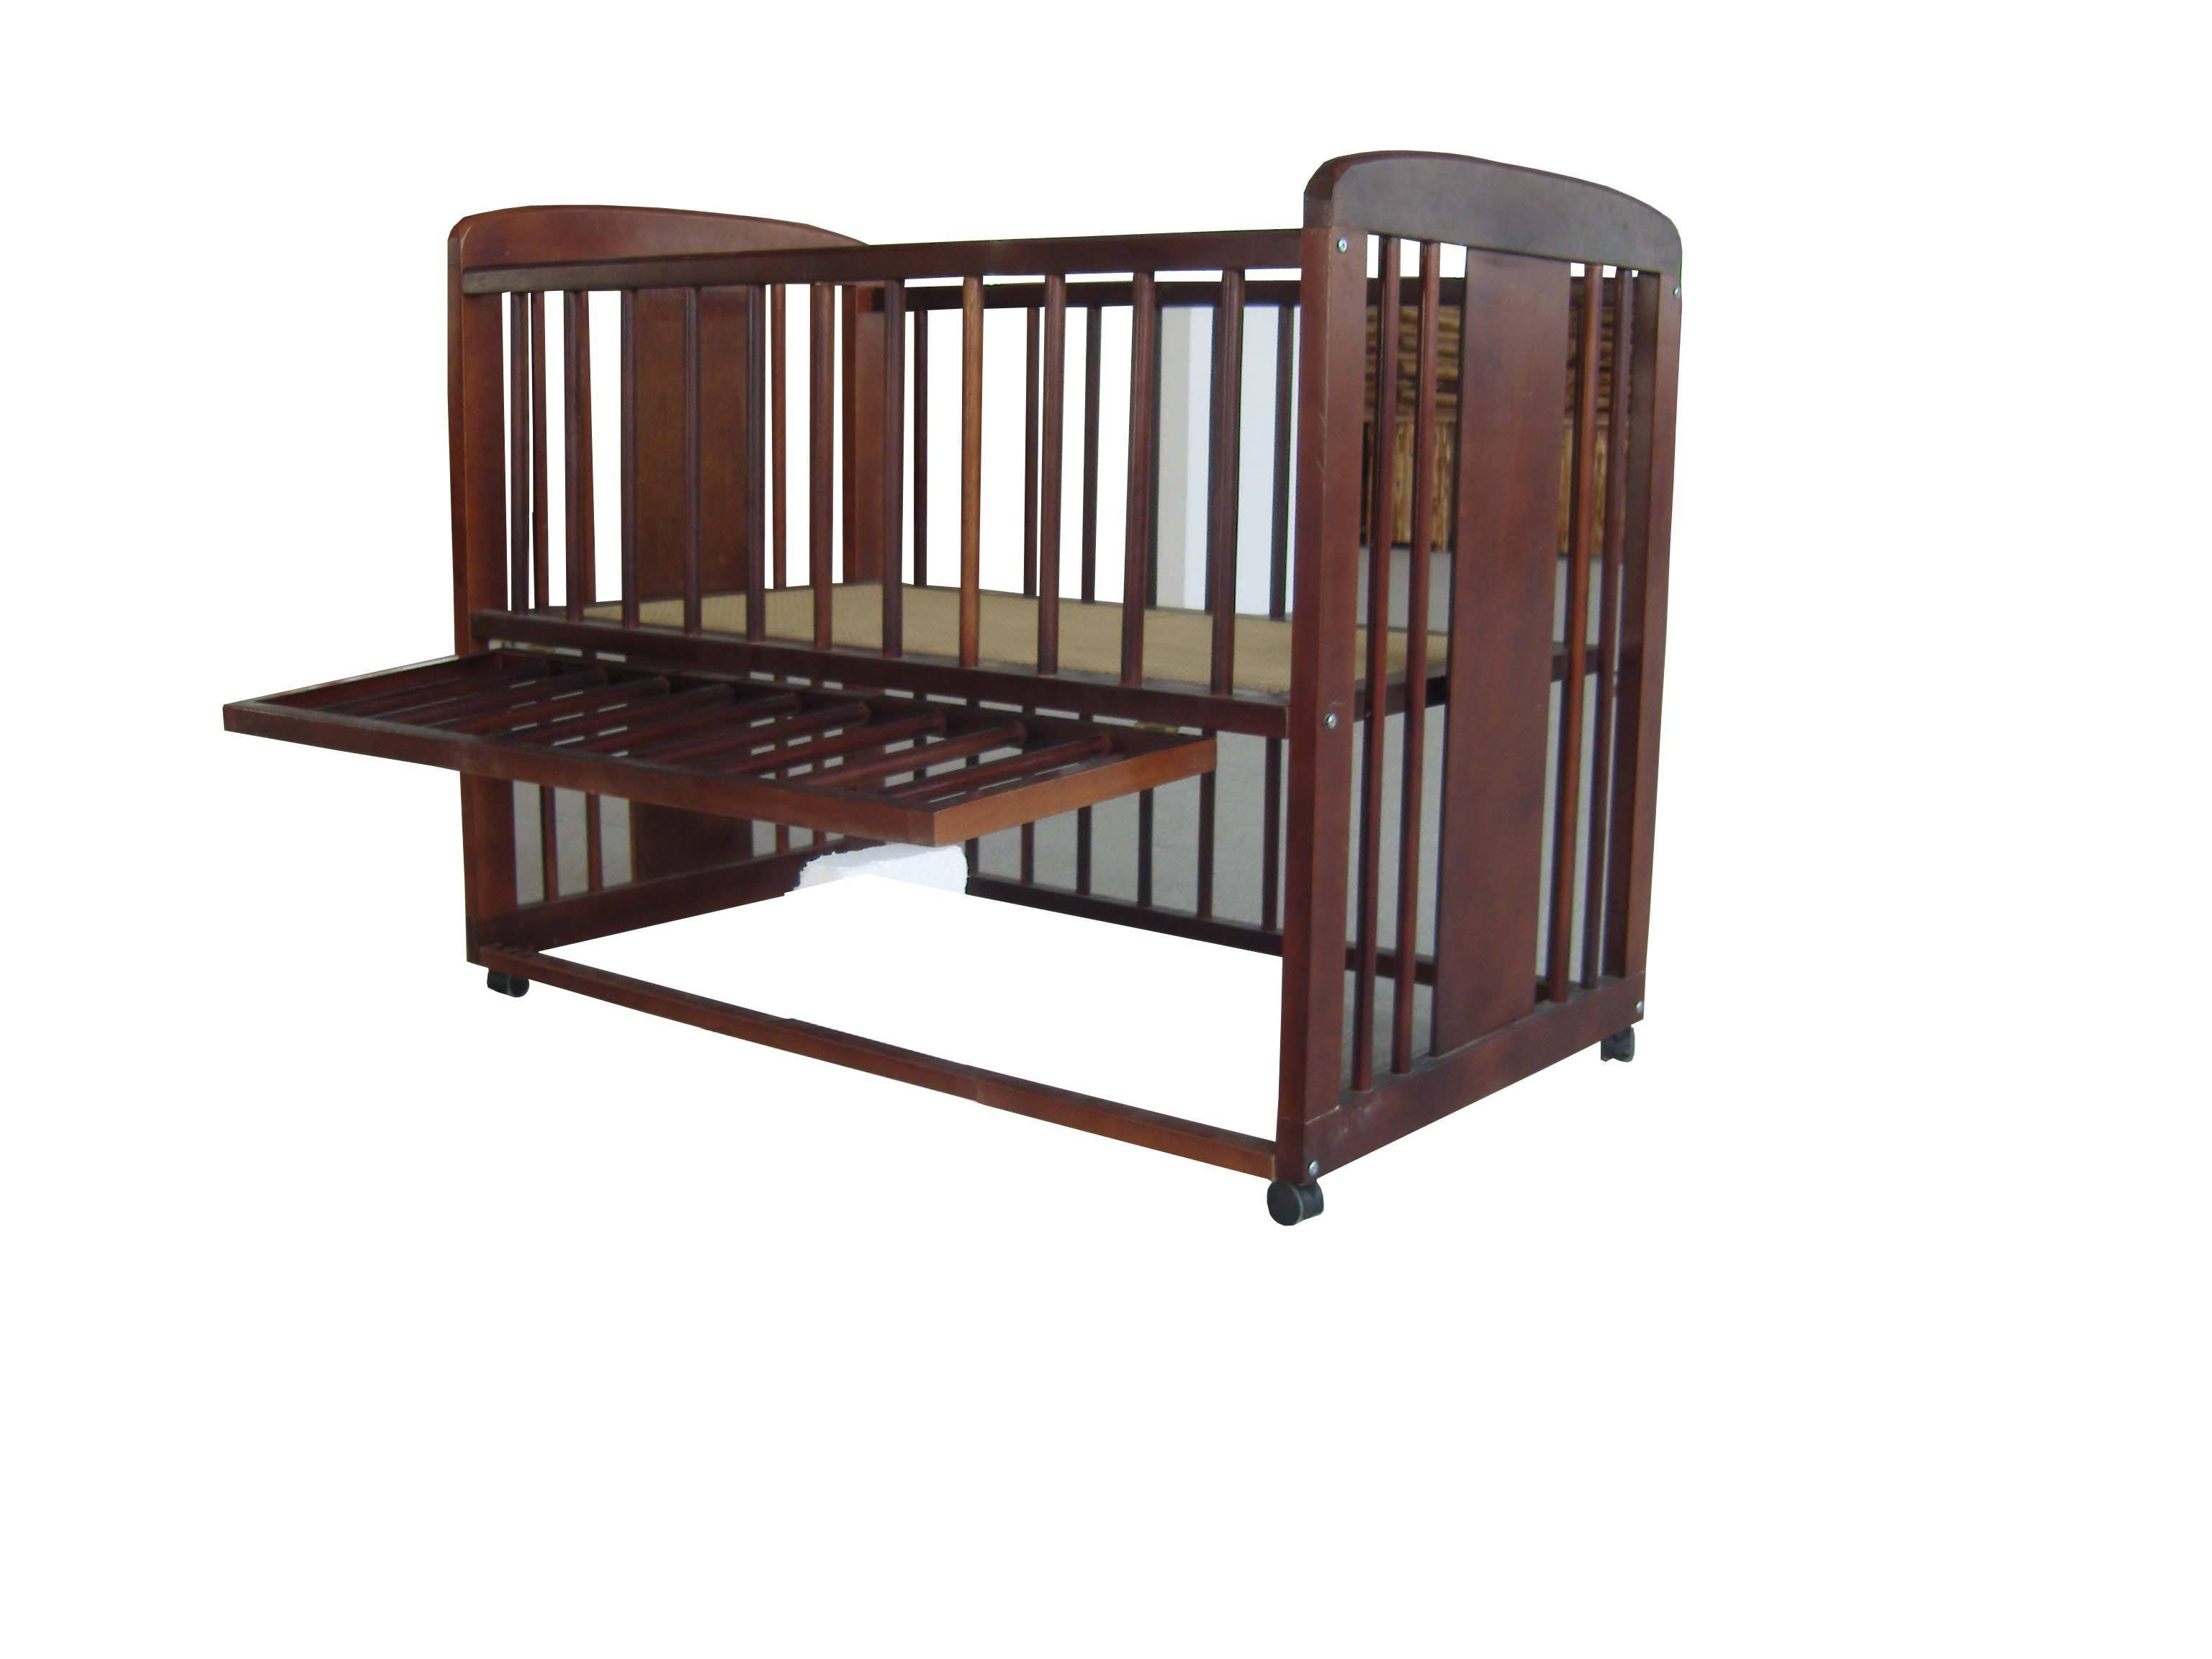 Wooden Crib Dimensions Baby Crib Design Inspiration